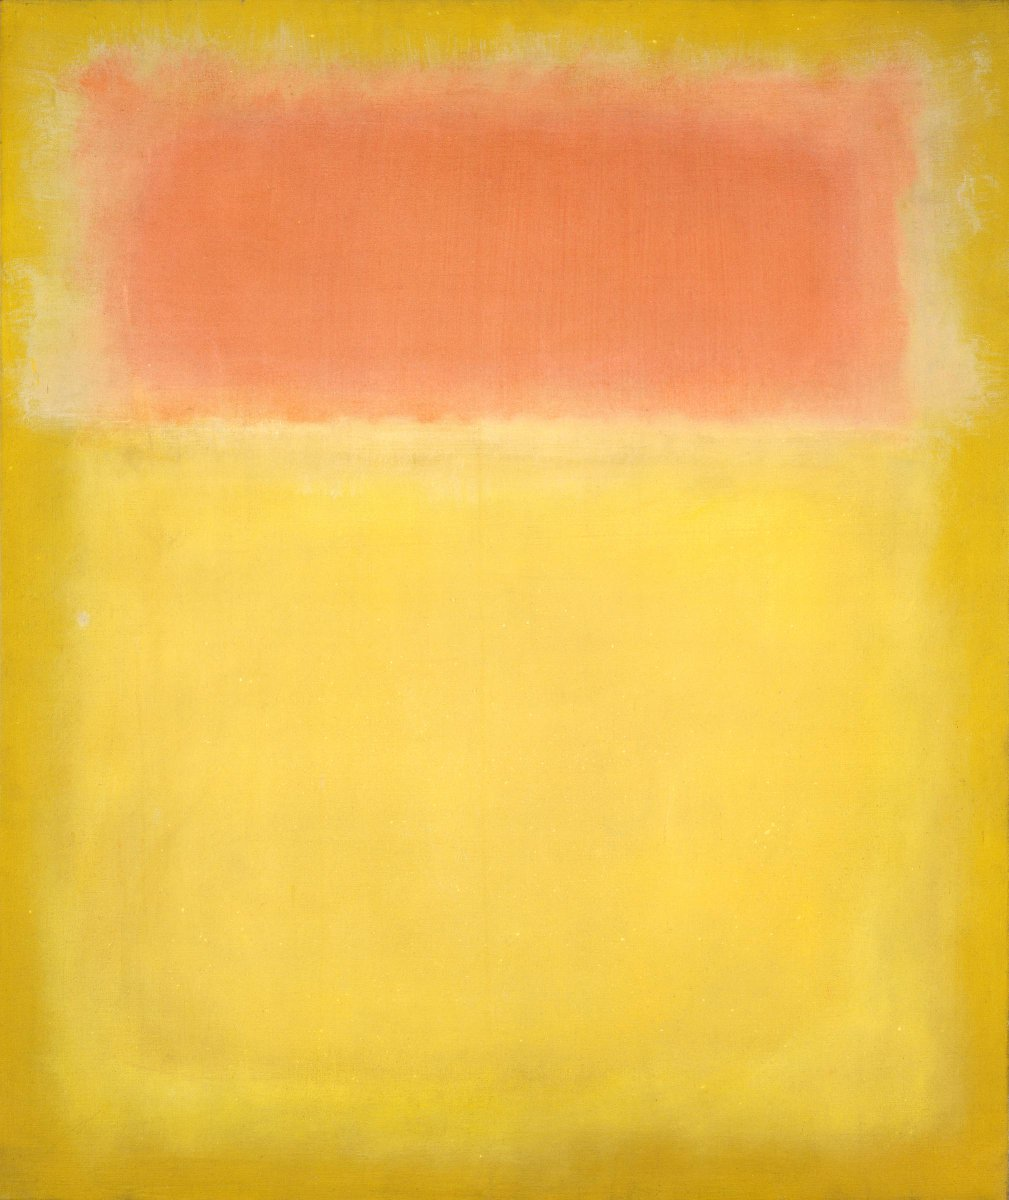 For Mark #Rothko's birthday: A look at his current retrospective, via @WSJ >  http://t.co/iaJQn0RREx http://t.co/b8stSl2nLf